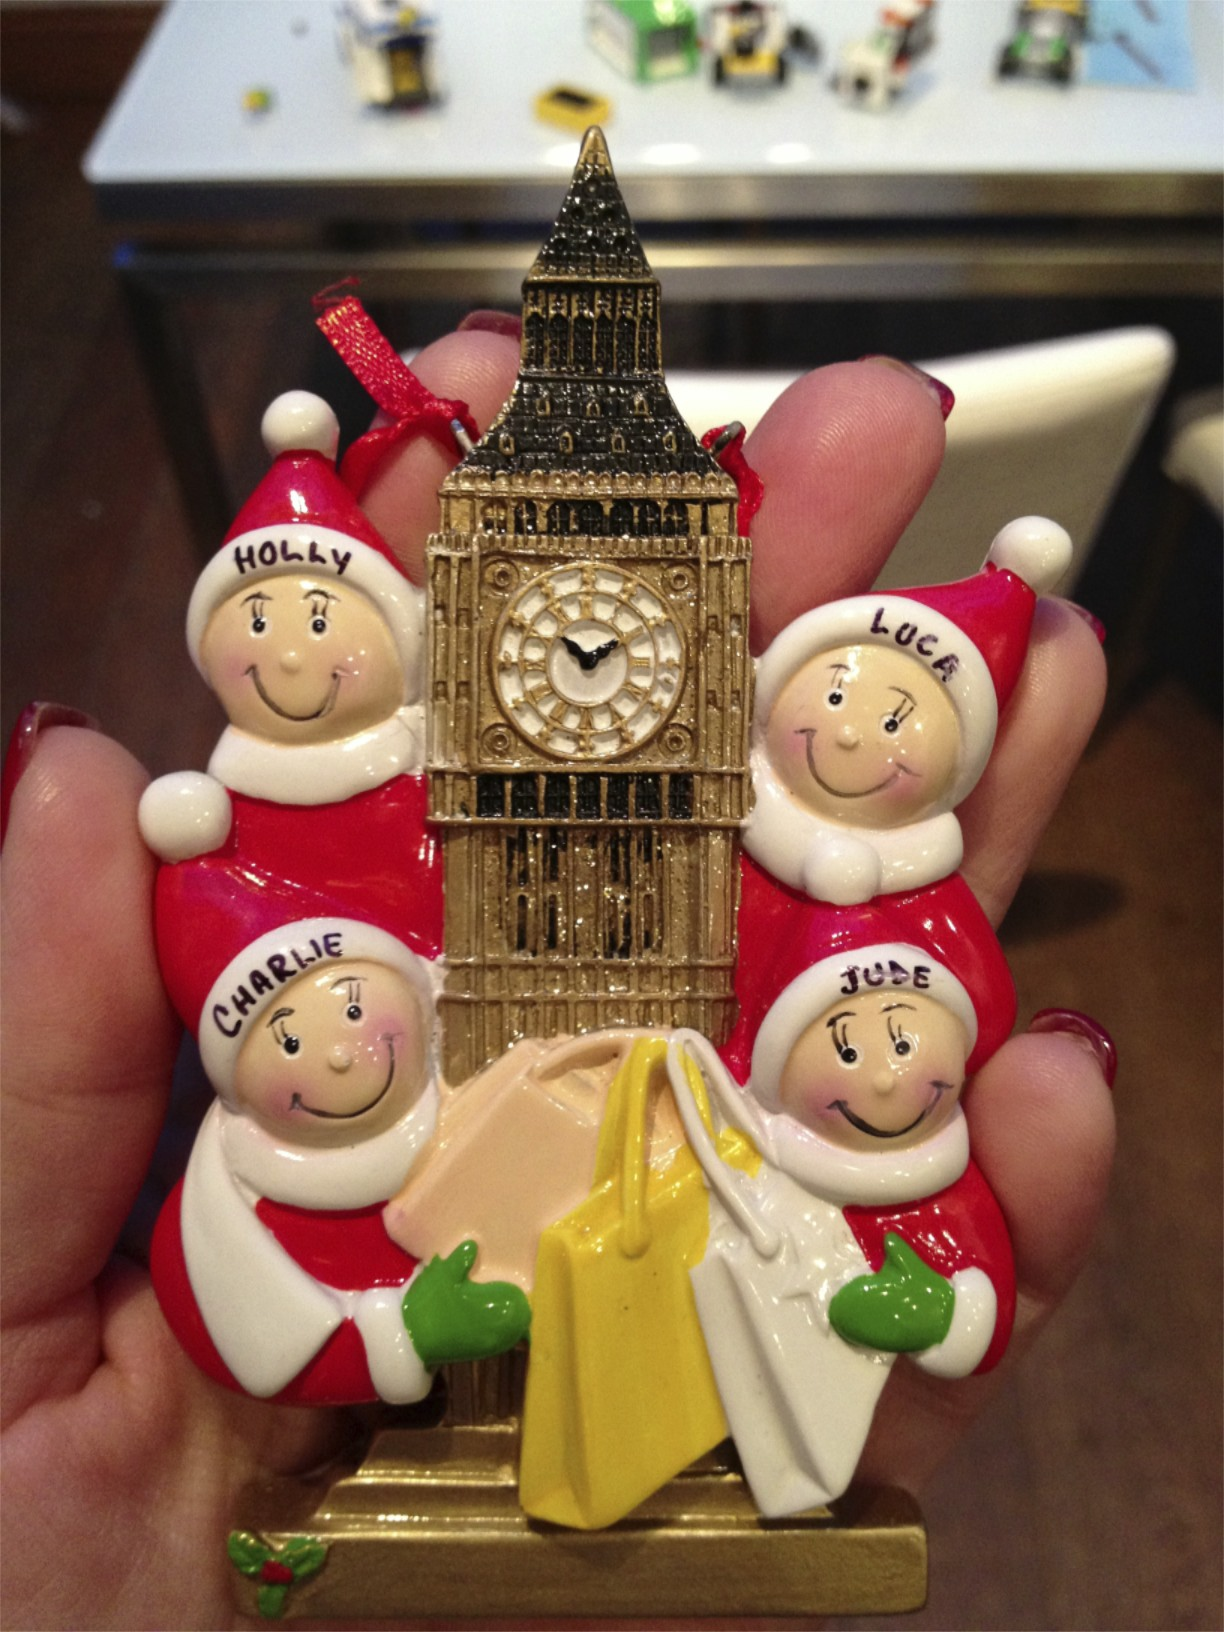 And I finalised the finishing touches for Christmas 2012. Our last Christmas in London.